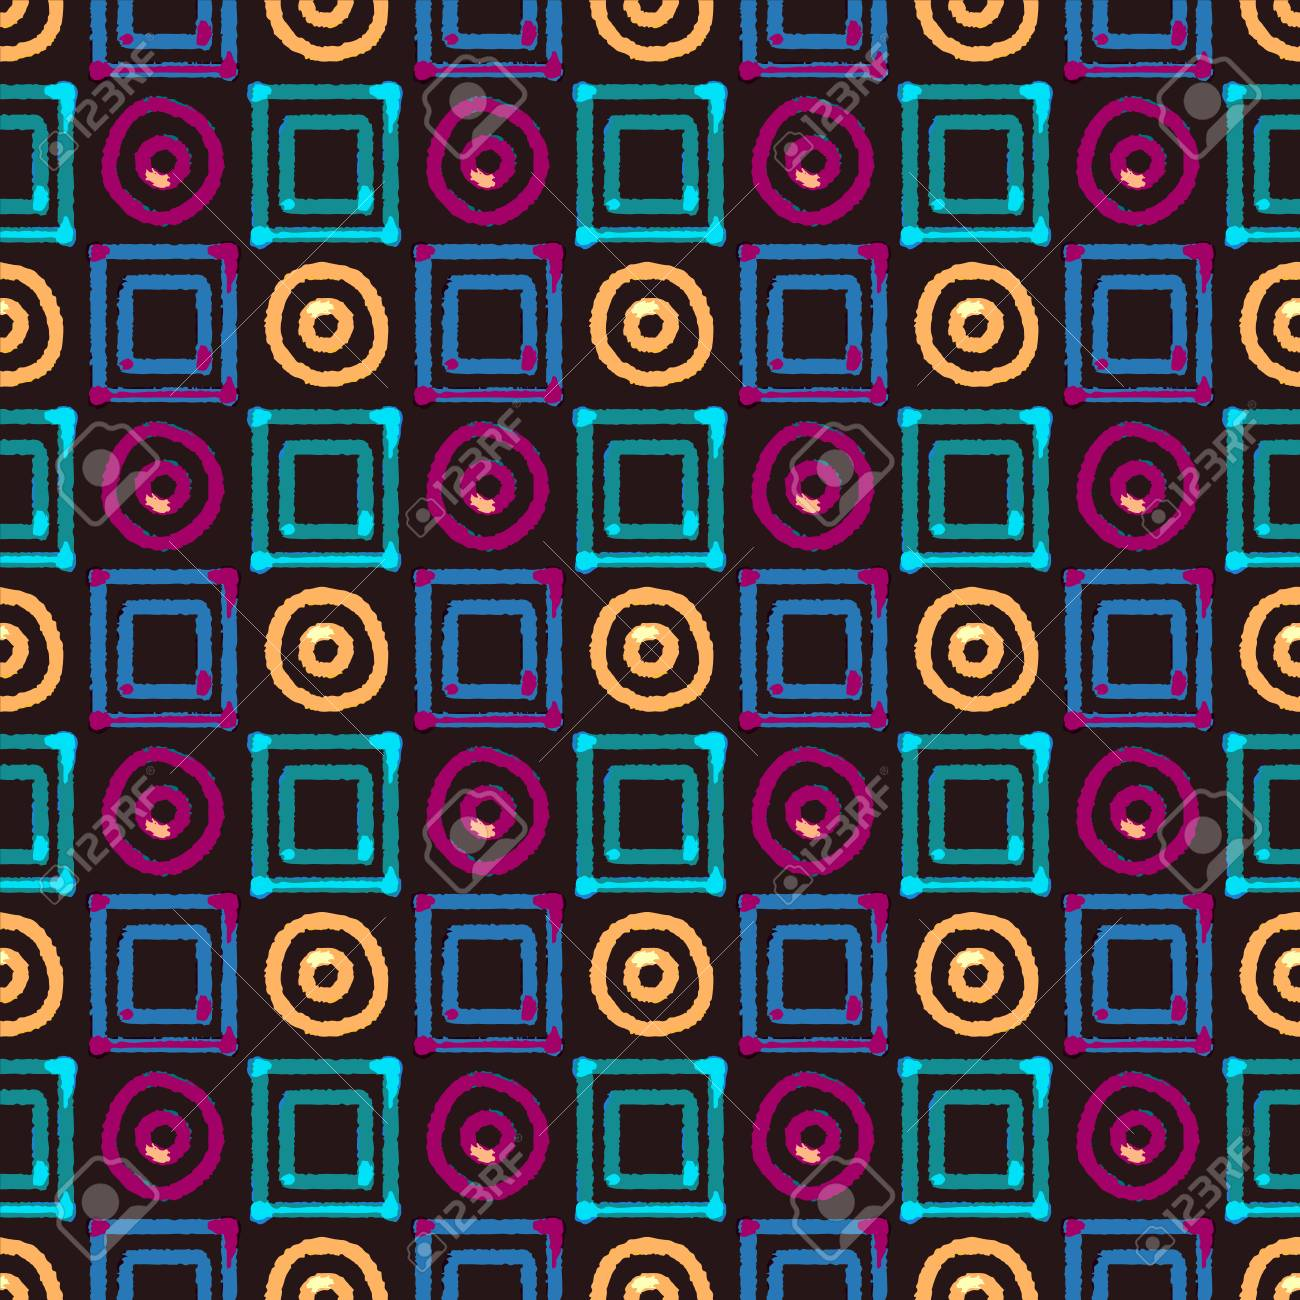 Abstract Art Geometric Distressed Seamless Pattern With Squares